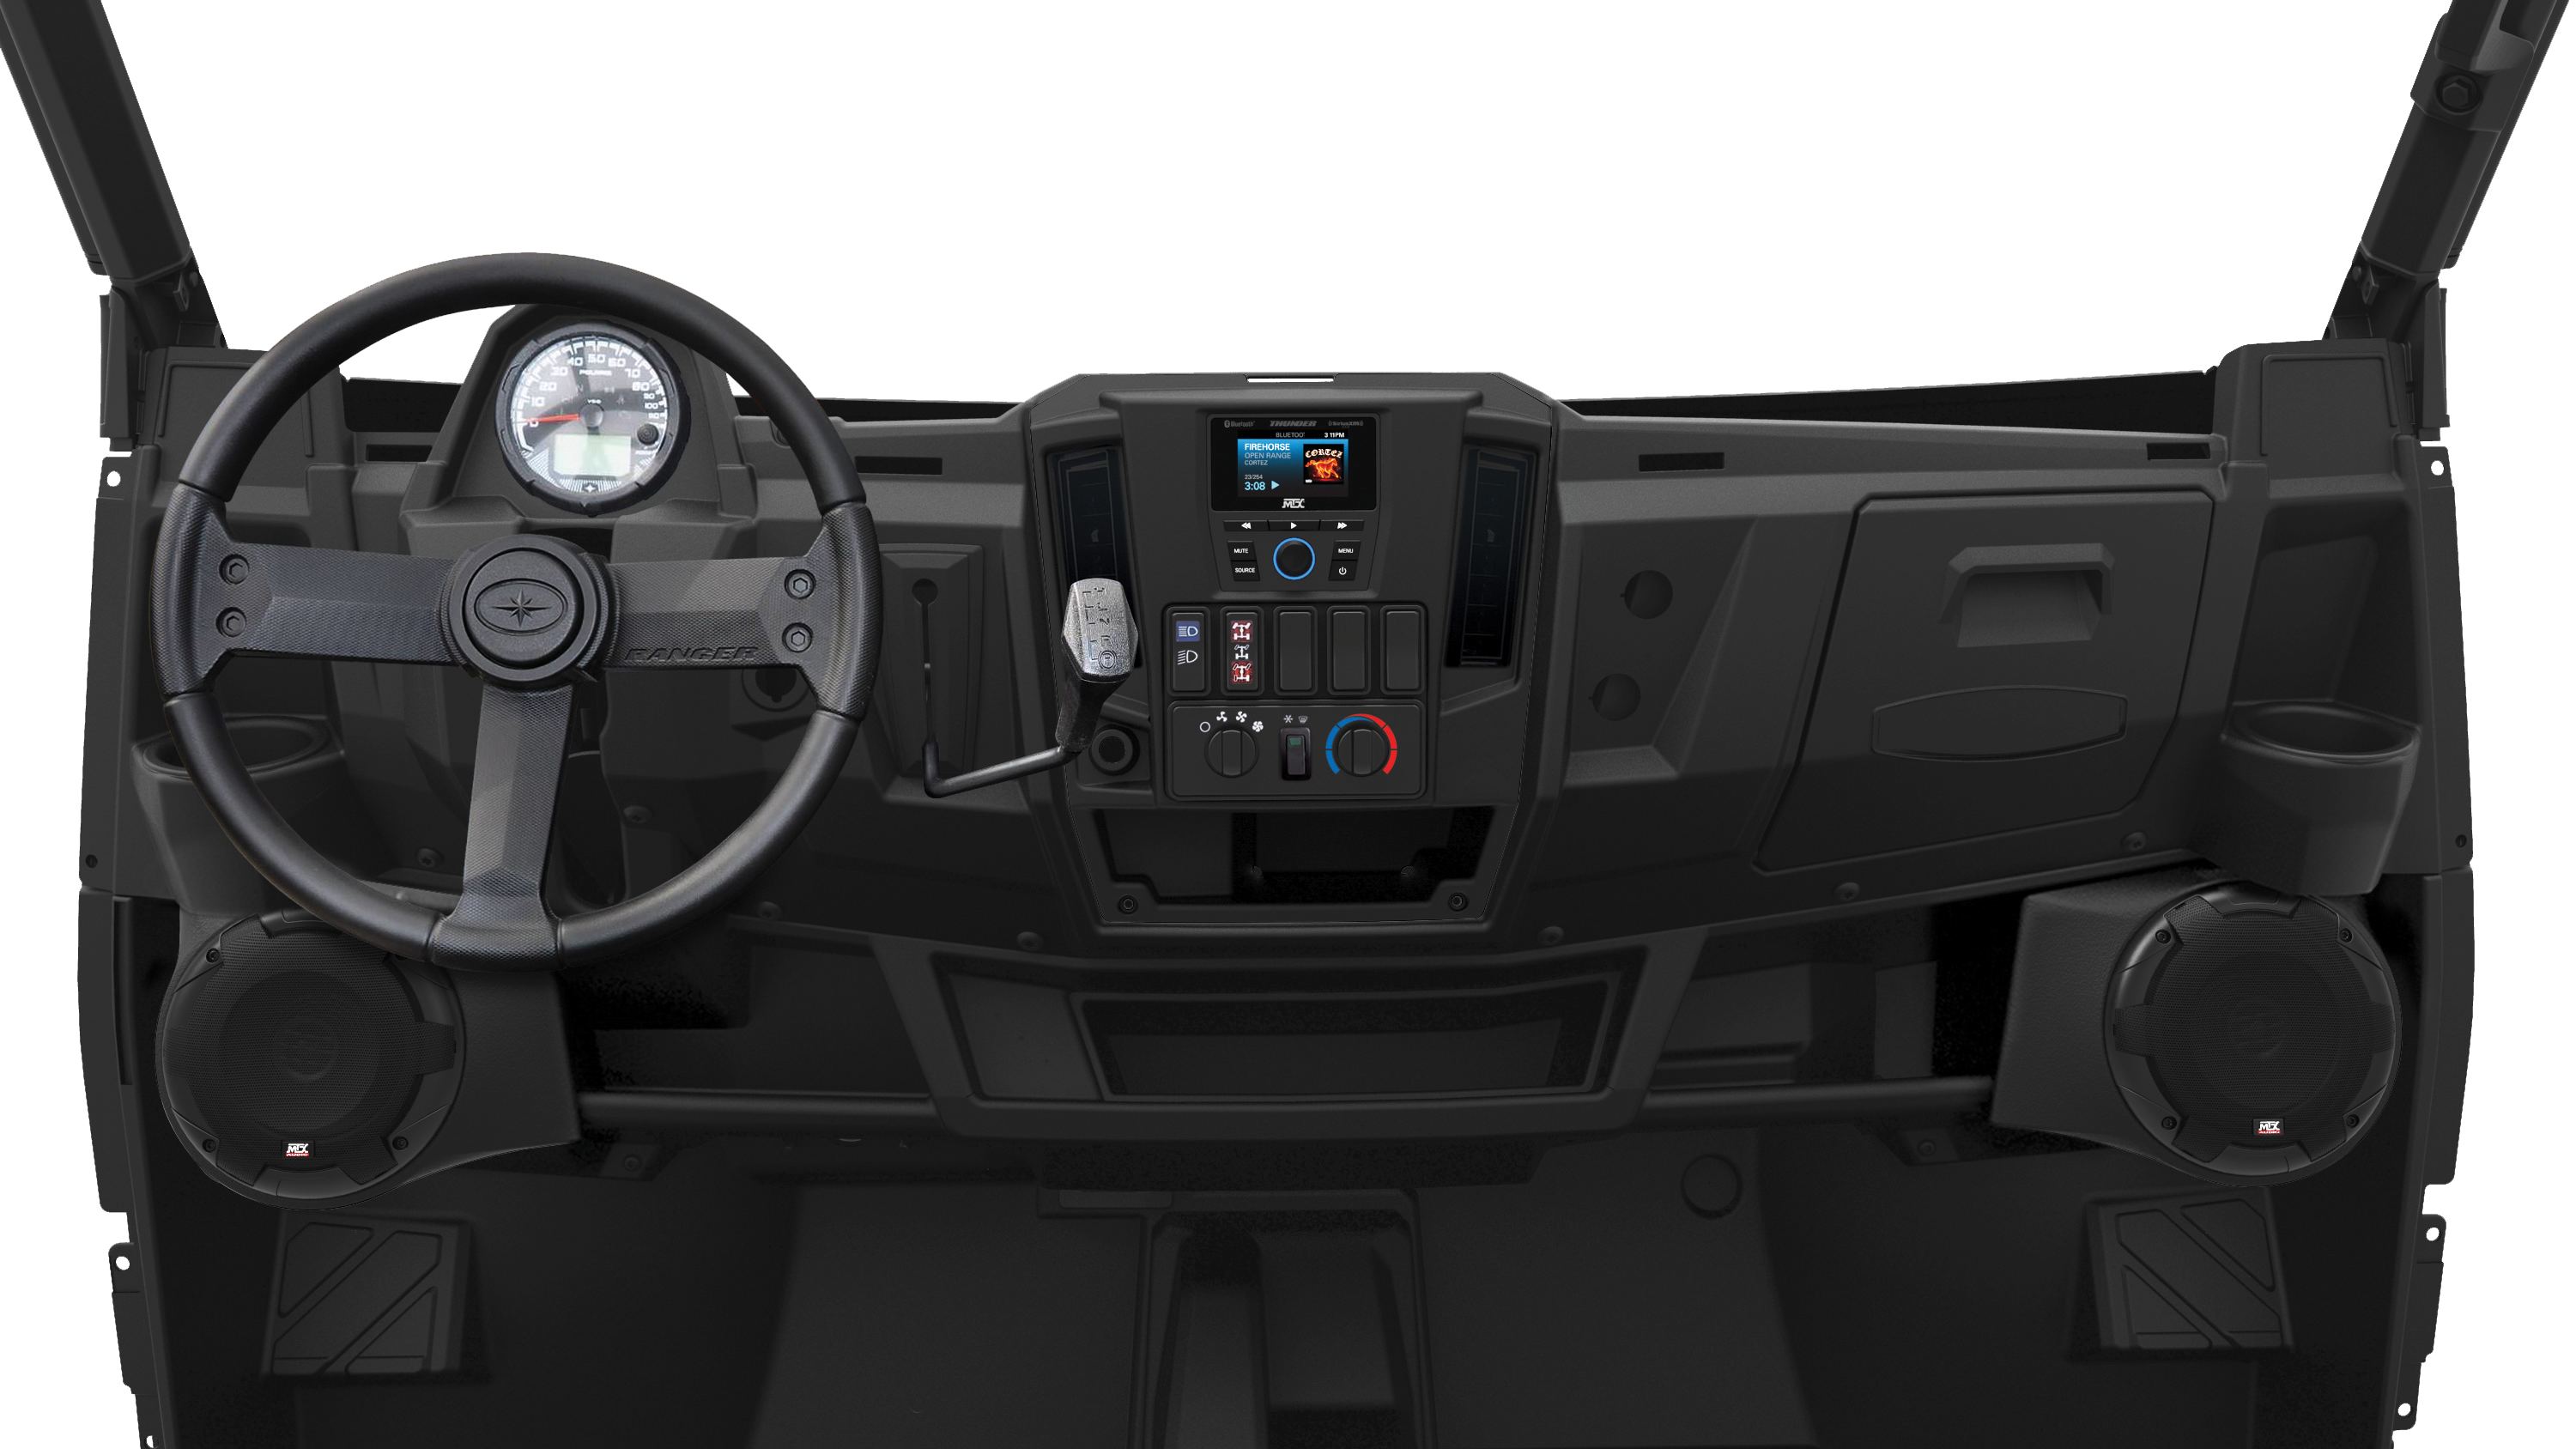 RNGRPOD65 Installed on Polaris RANGER